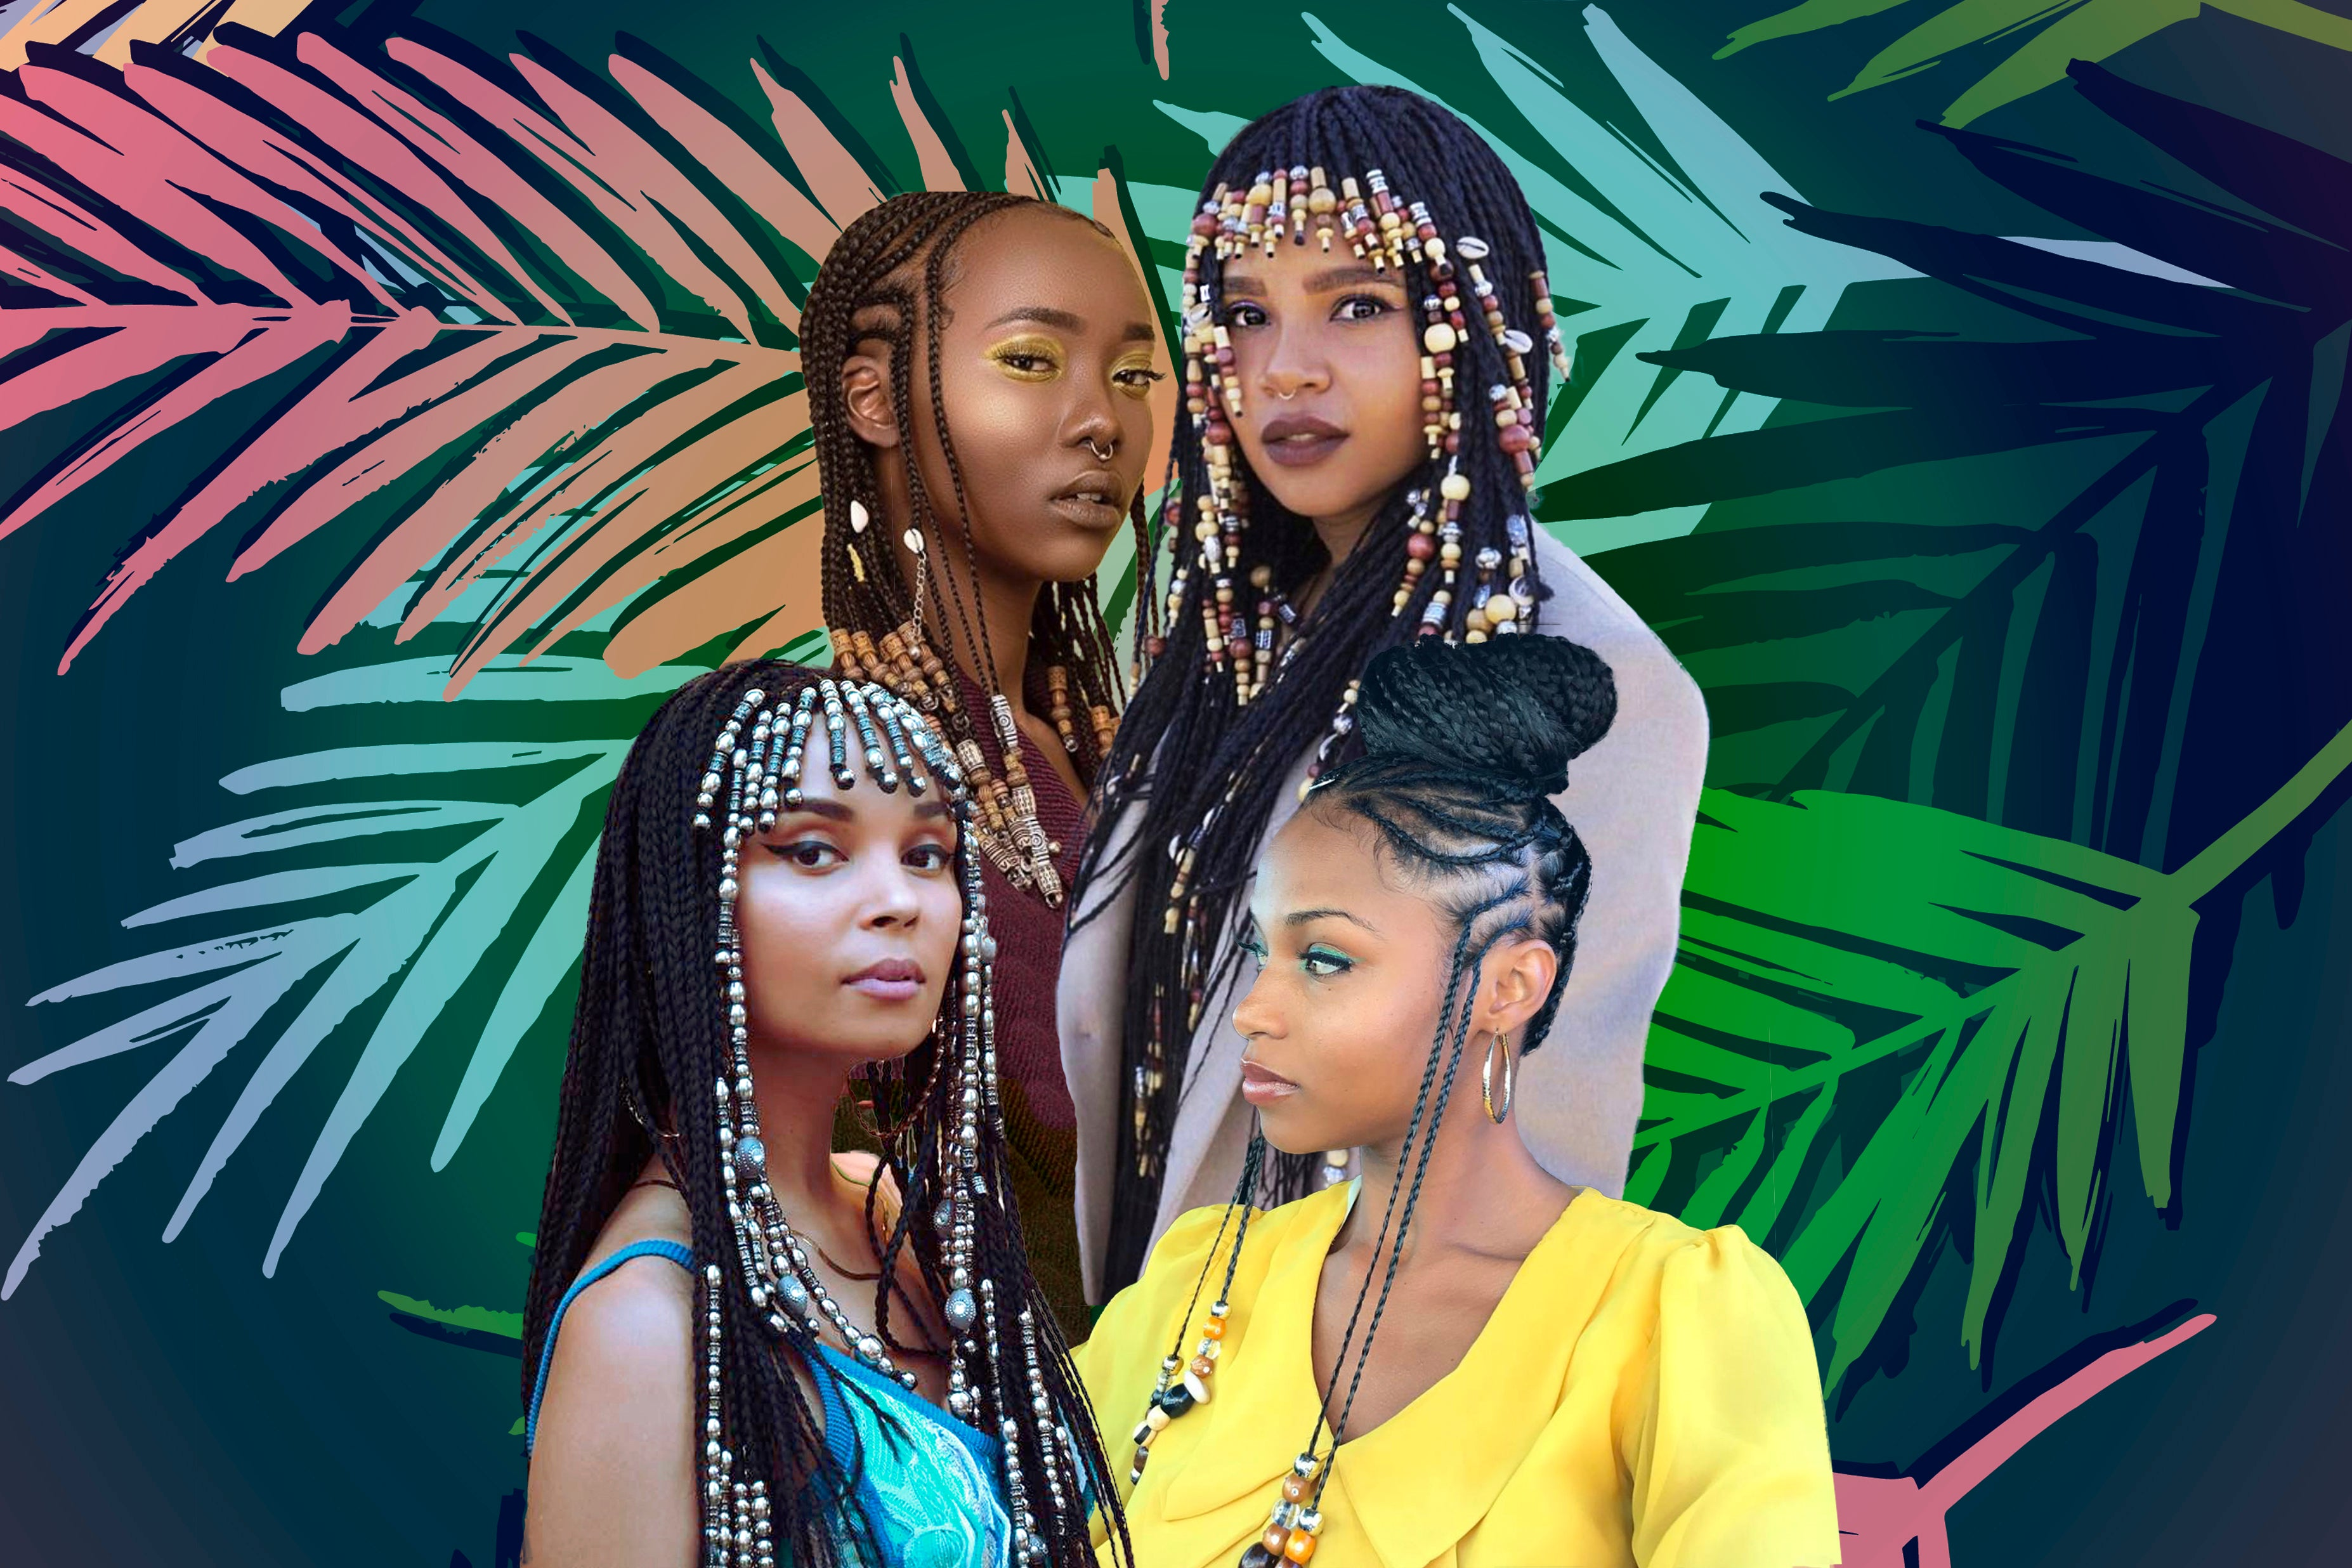 Straight Back With Beads: Braids With Beads Inspiration